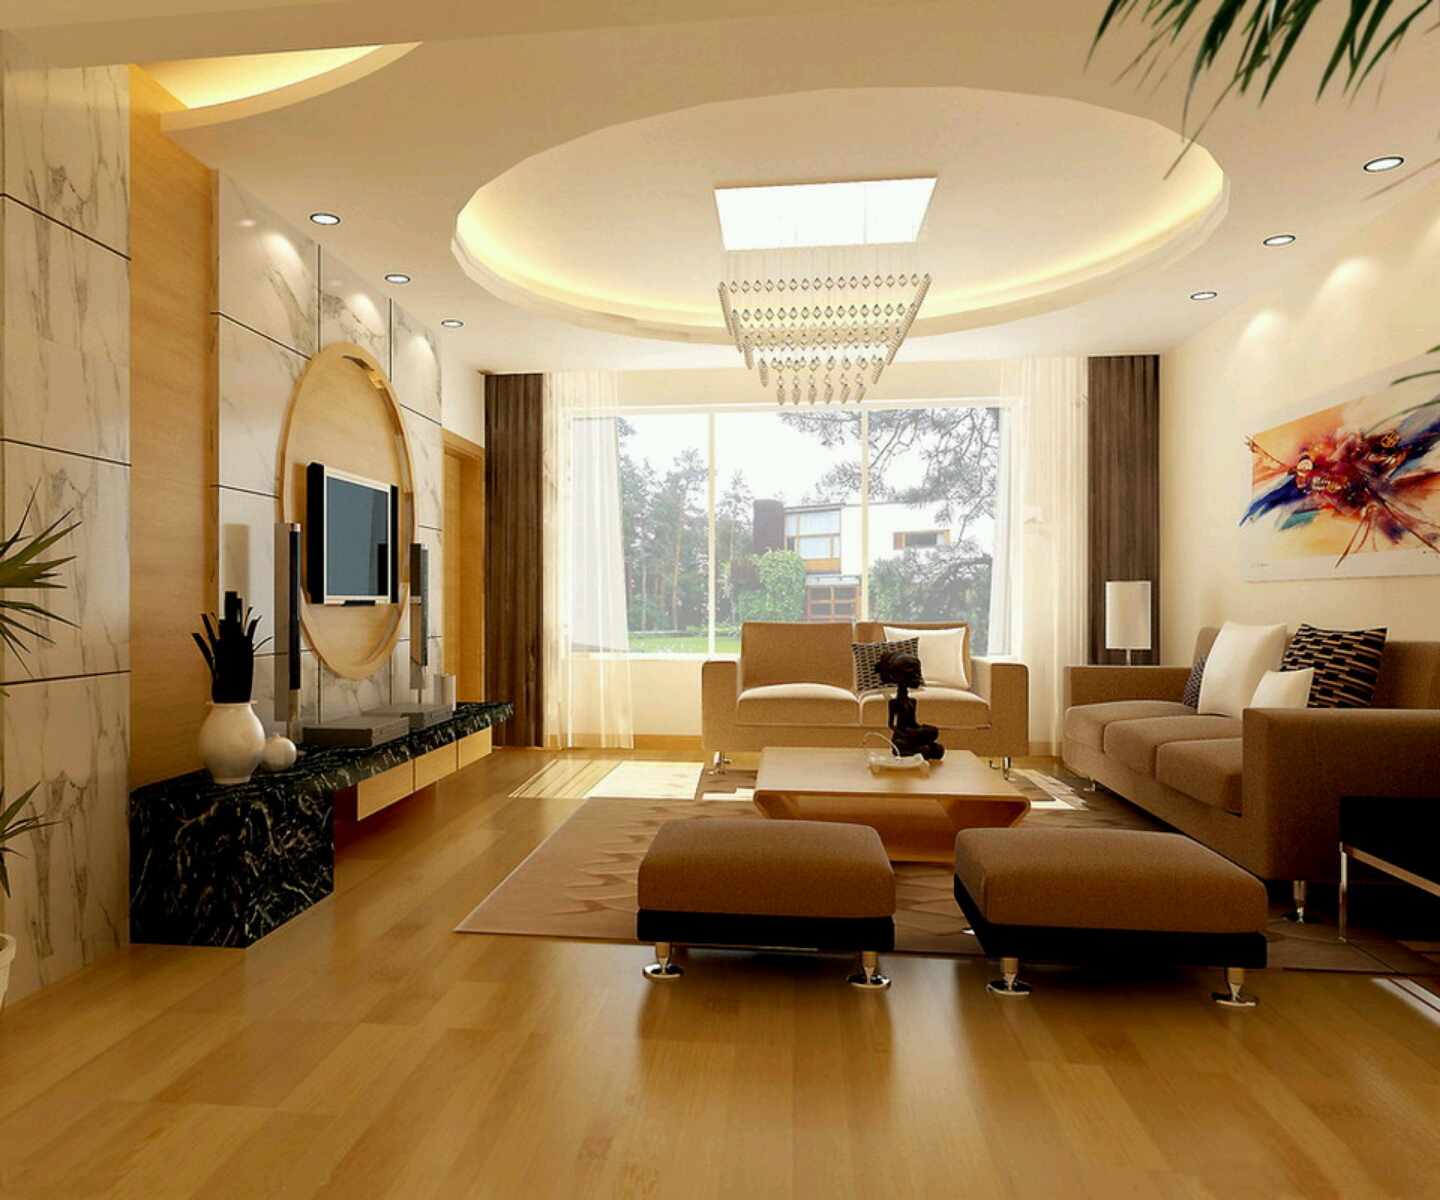 Modern interior decoration living rooms ceiling designs for Living room interior ideas